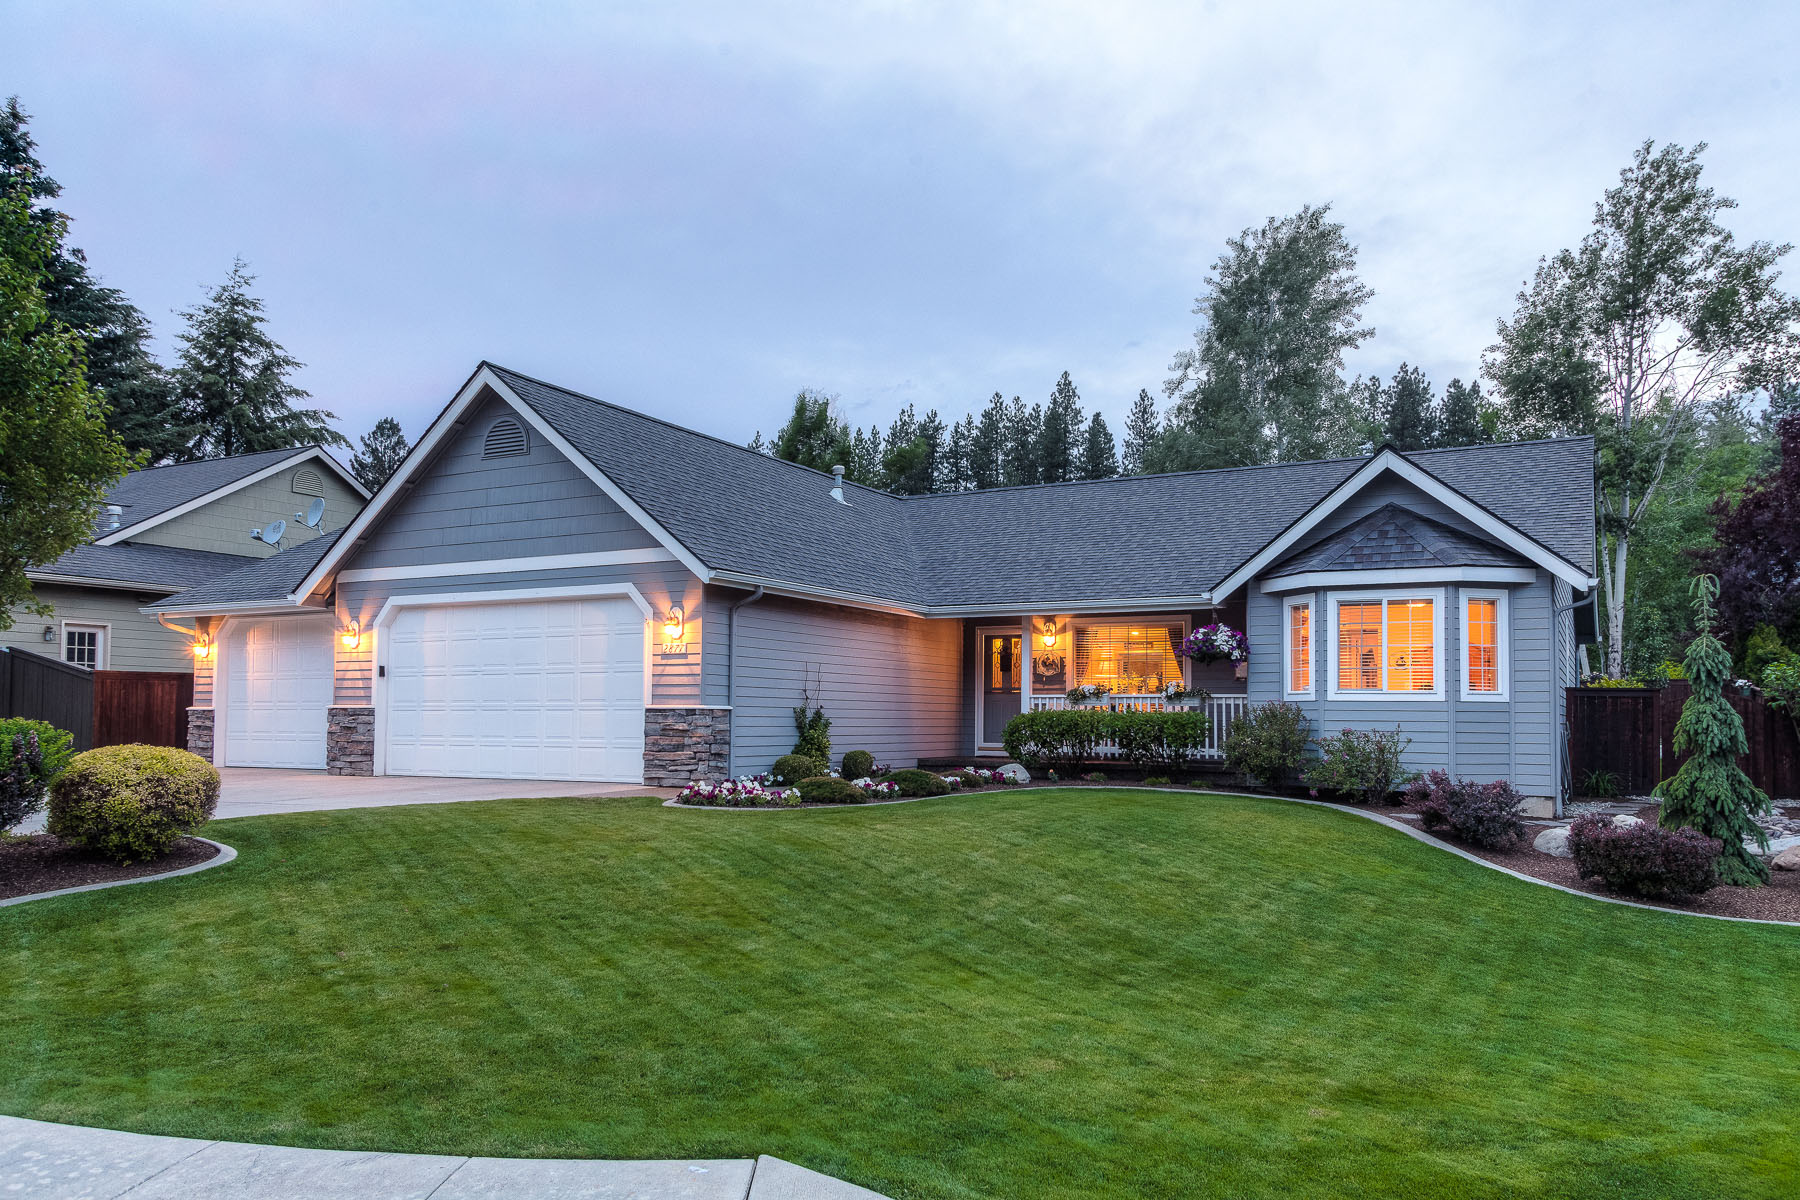 Single Family Home for Sale at Single Level Upgraded Beauty in Best Hills 2877 E Red Cedar Ct Coeur D Alene, Idaho, 83815 United States